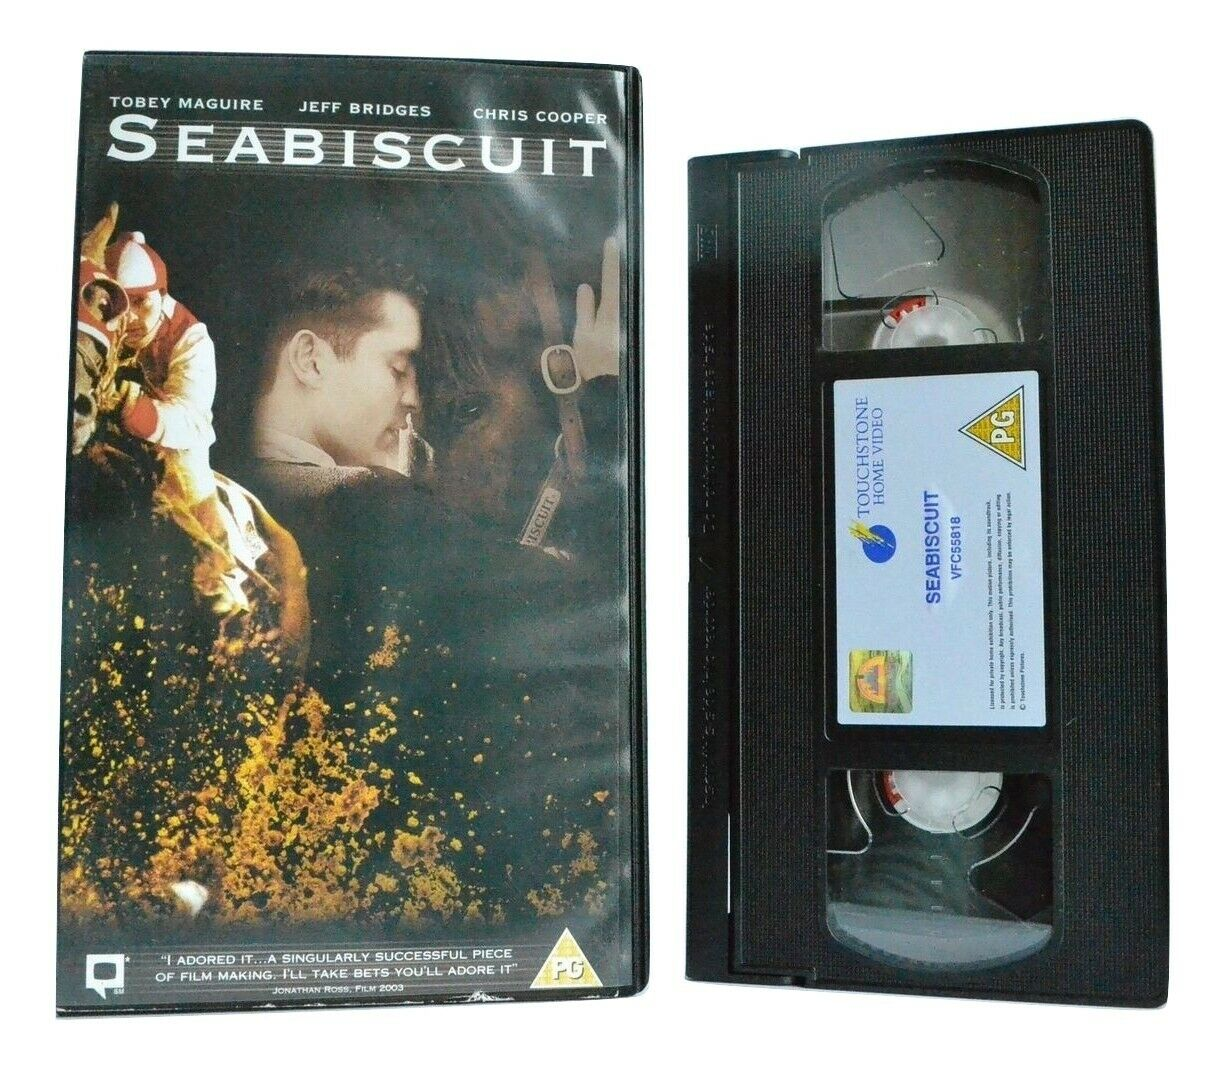 Seabiscut: Based On L.Hillenbrand Book - (2003) Equestrian Sports Film - Pal VHS